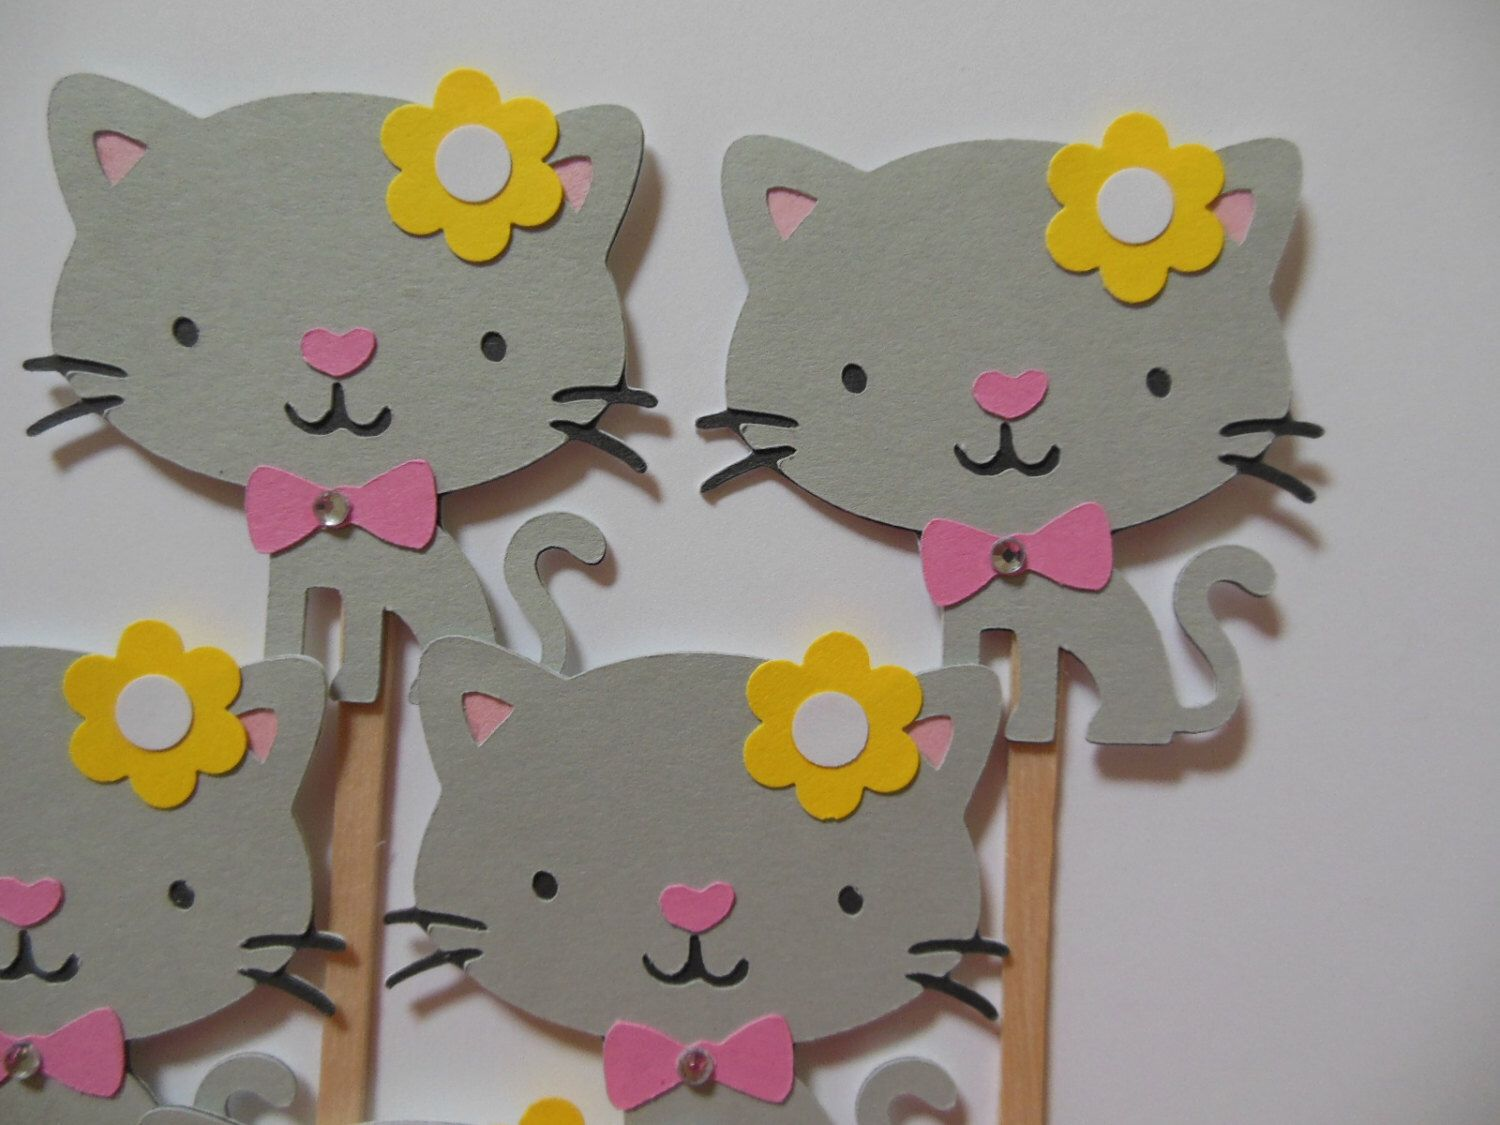 Kitty Cat Cupcake Toppers - Gray and Pink - Girl Birthday Party Decorations - Girl Baby Showers - Set of 6 by Whimsiesbykaren on Etsy https://www.etsy.com/listing/245519764/kitty-cat-cupcake-toppers-gray-and-pink